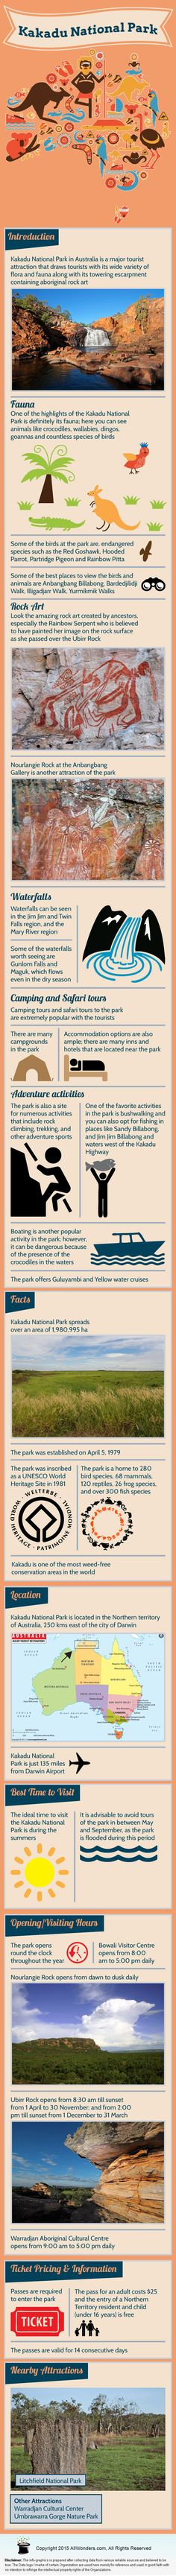 Kakadu National Park Infographic showing facts and information about the Park in Australia. Know about its Location, Best time to visit, nearby attractions and more. Kakadu National Park, National Parks, Australia Travel, Australia 2018, Australian Continent, Exotic Places, Largest Countries, Small Island, Papua New Guinea